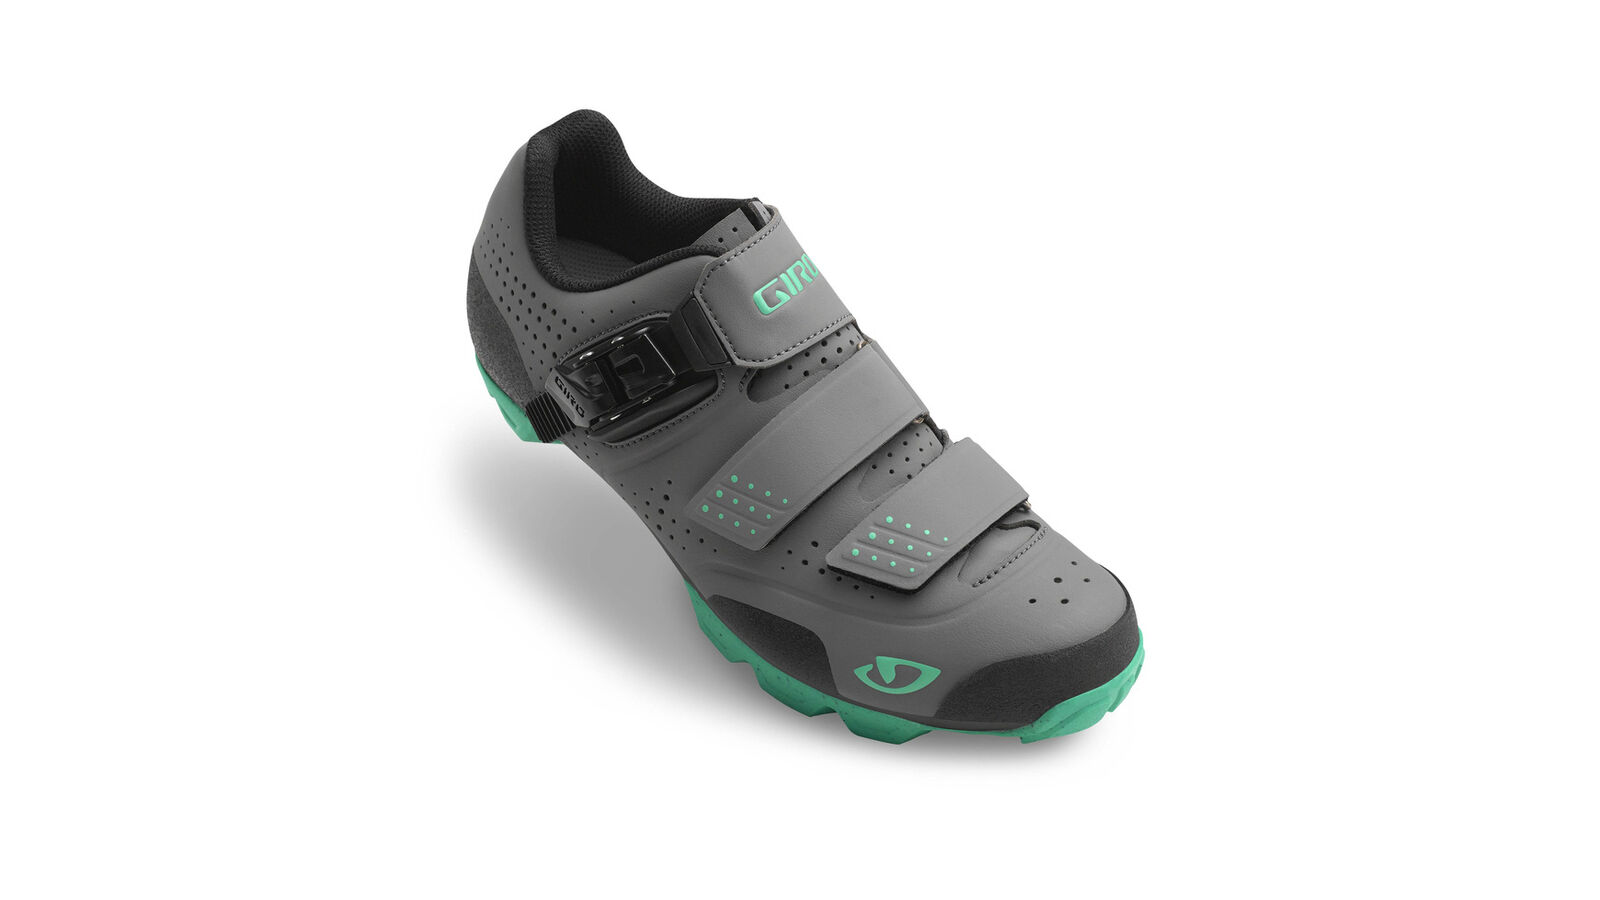 Giro shoes Cyclist Manta R Grey Breathable Lightweight  geruchshemmend  fair prices